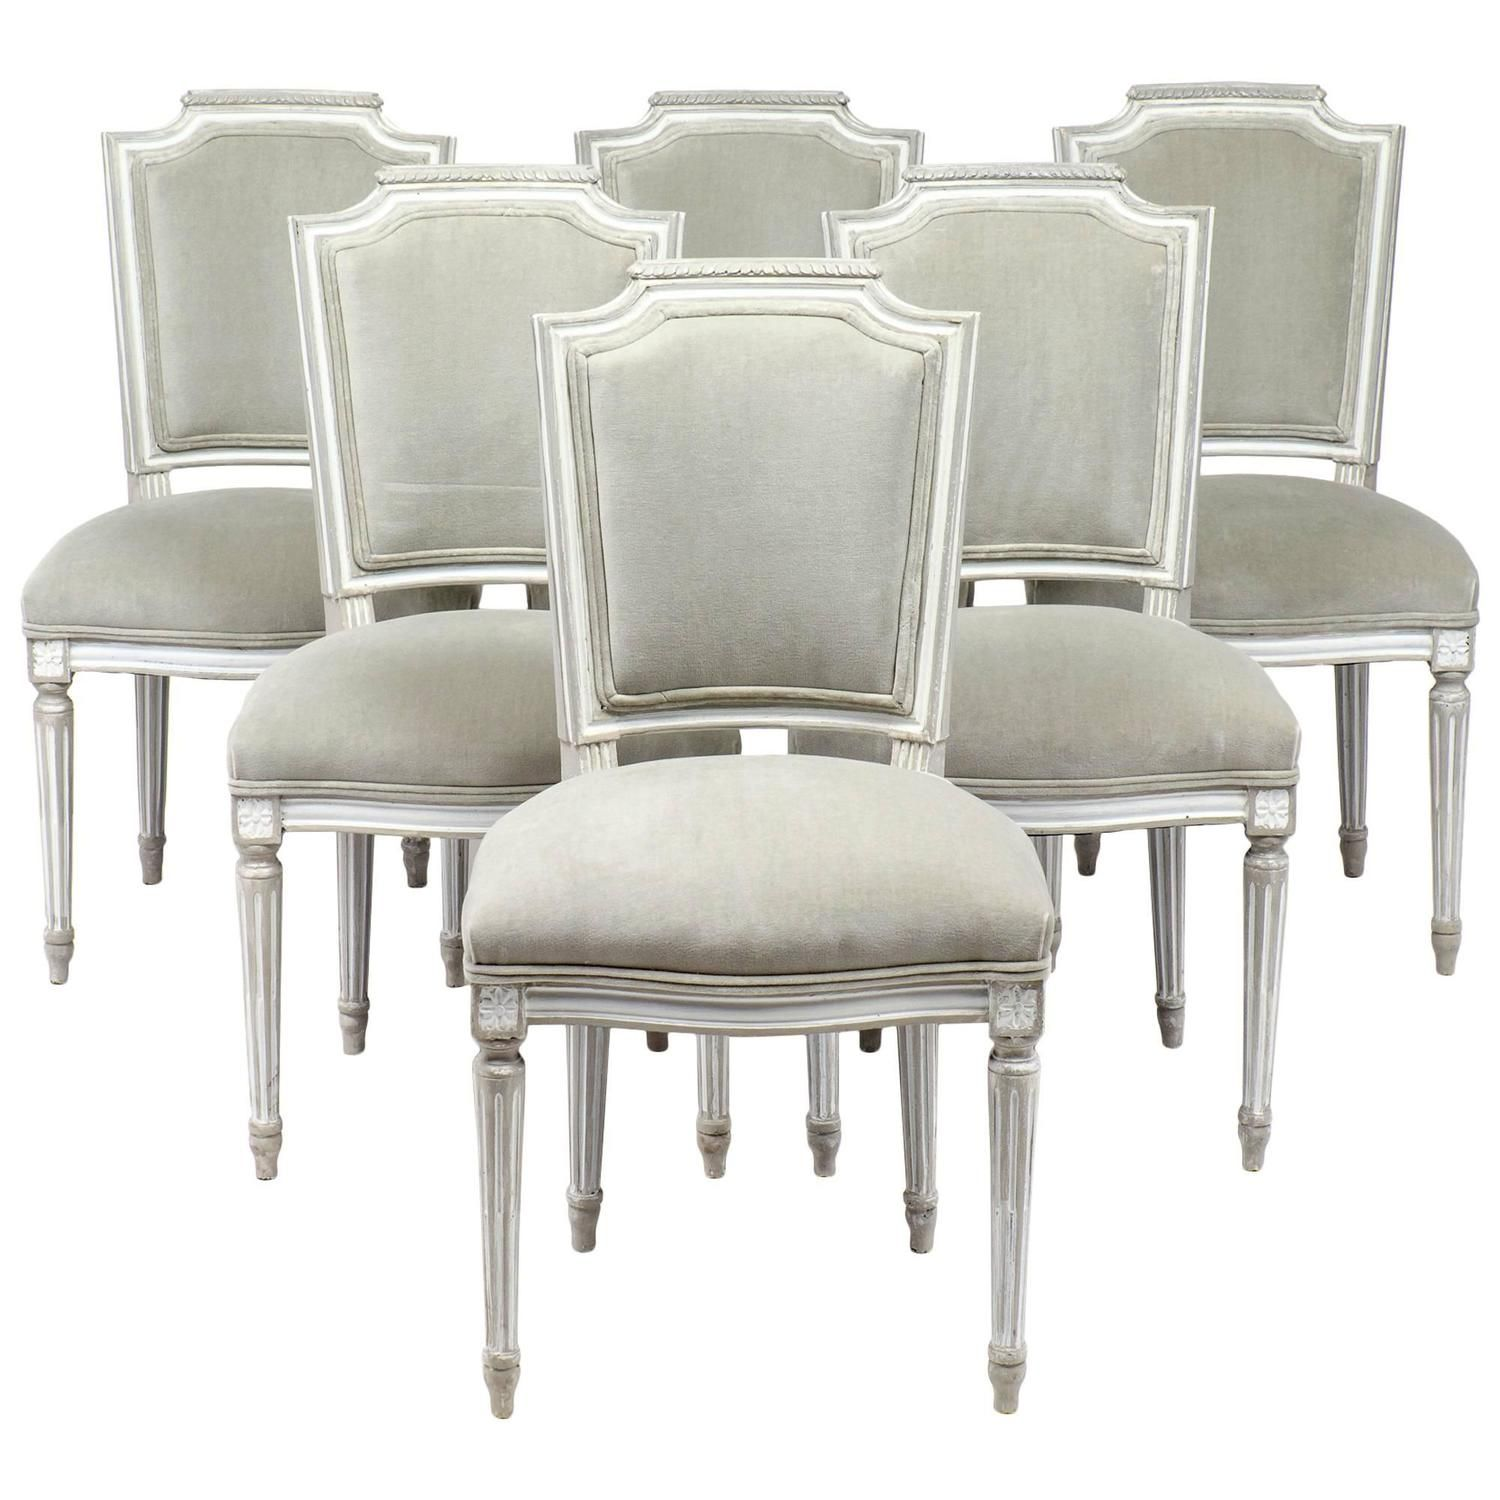 Antique louis xvi style set of six dining chairs 1stdibs